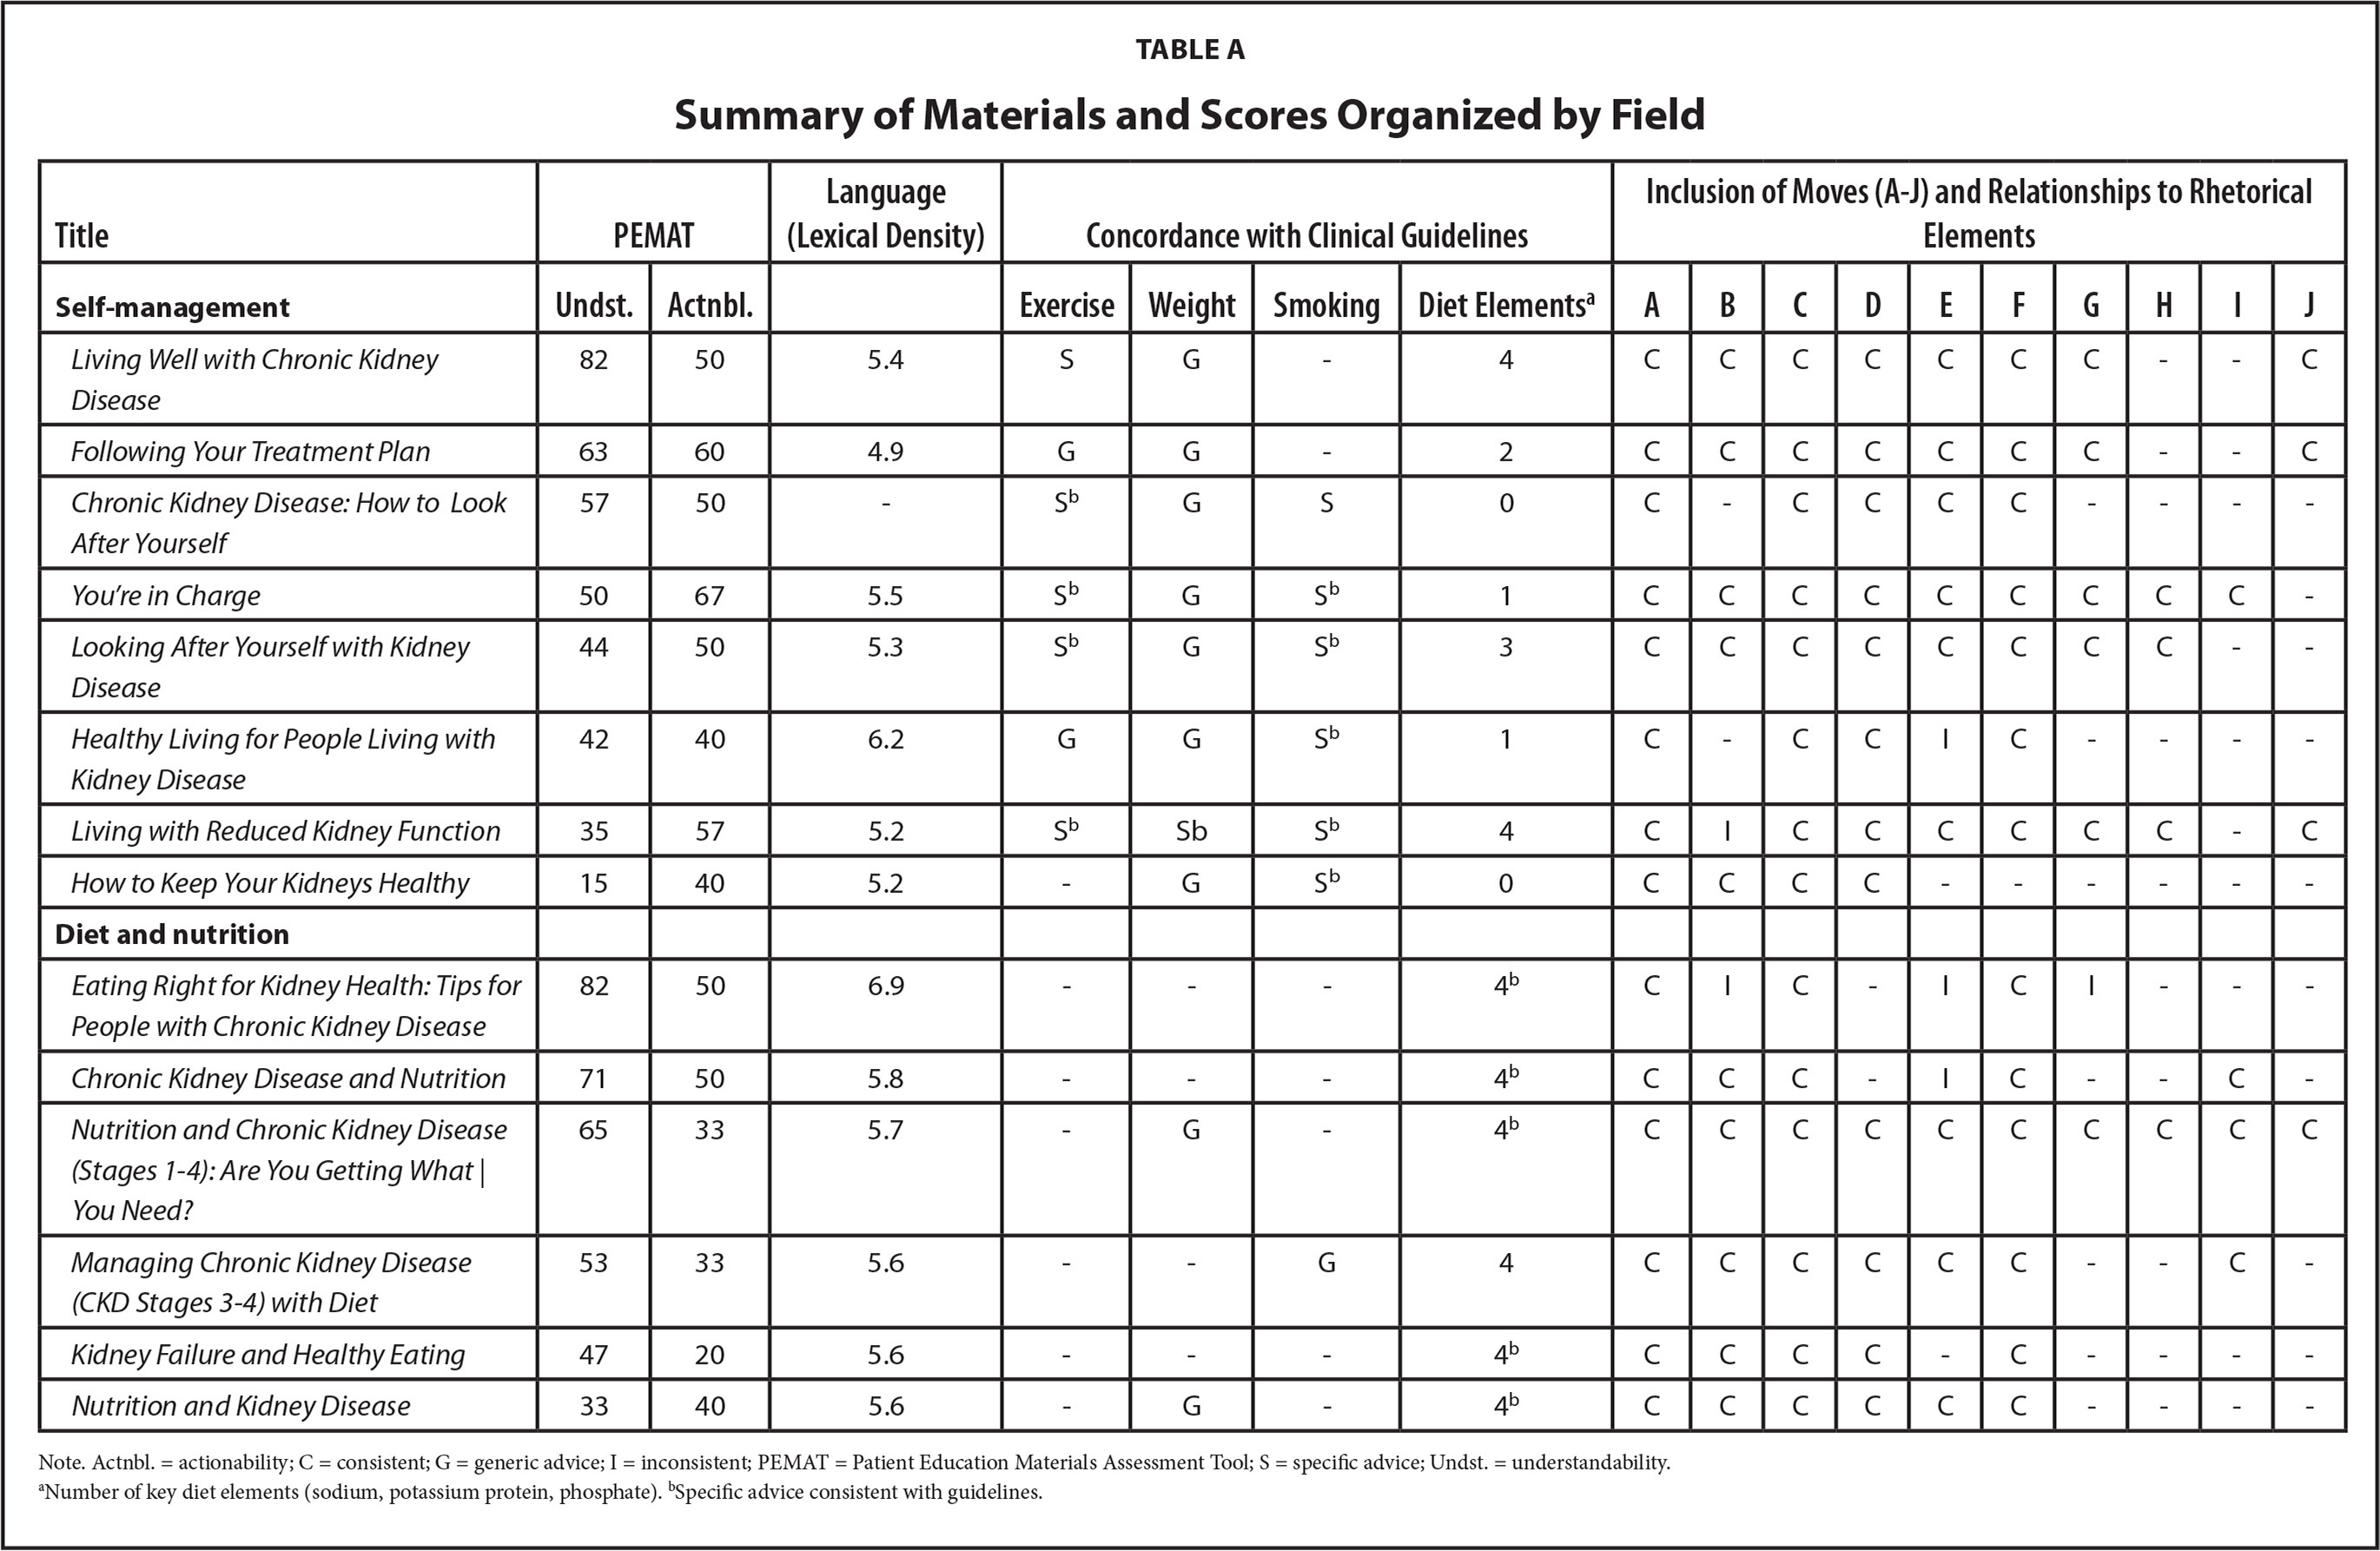 Summary of Materials and Scores Organized by Field